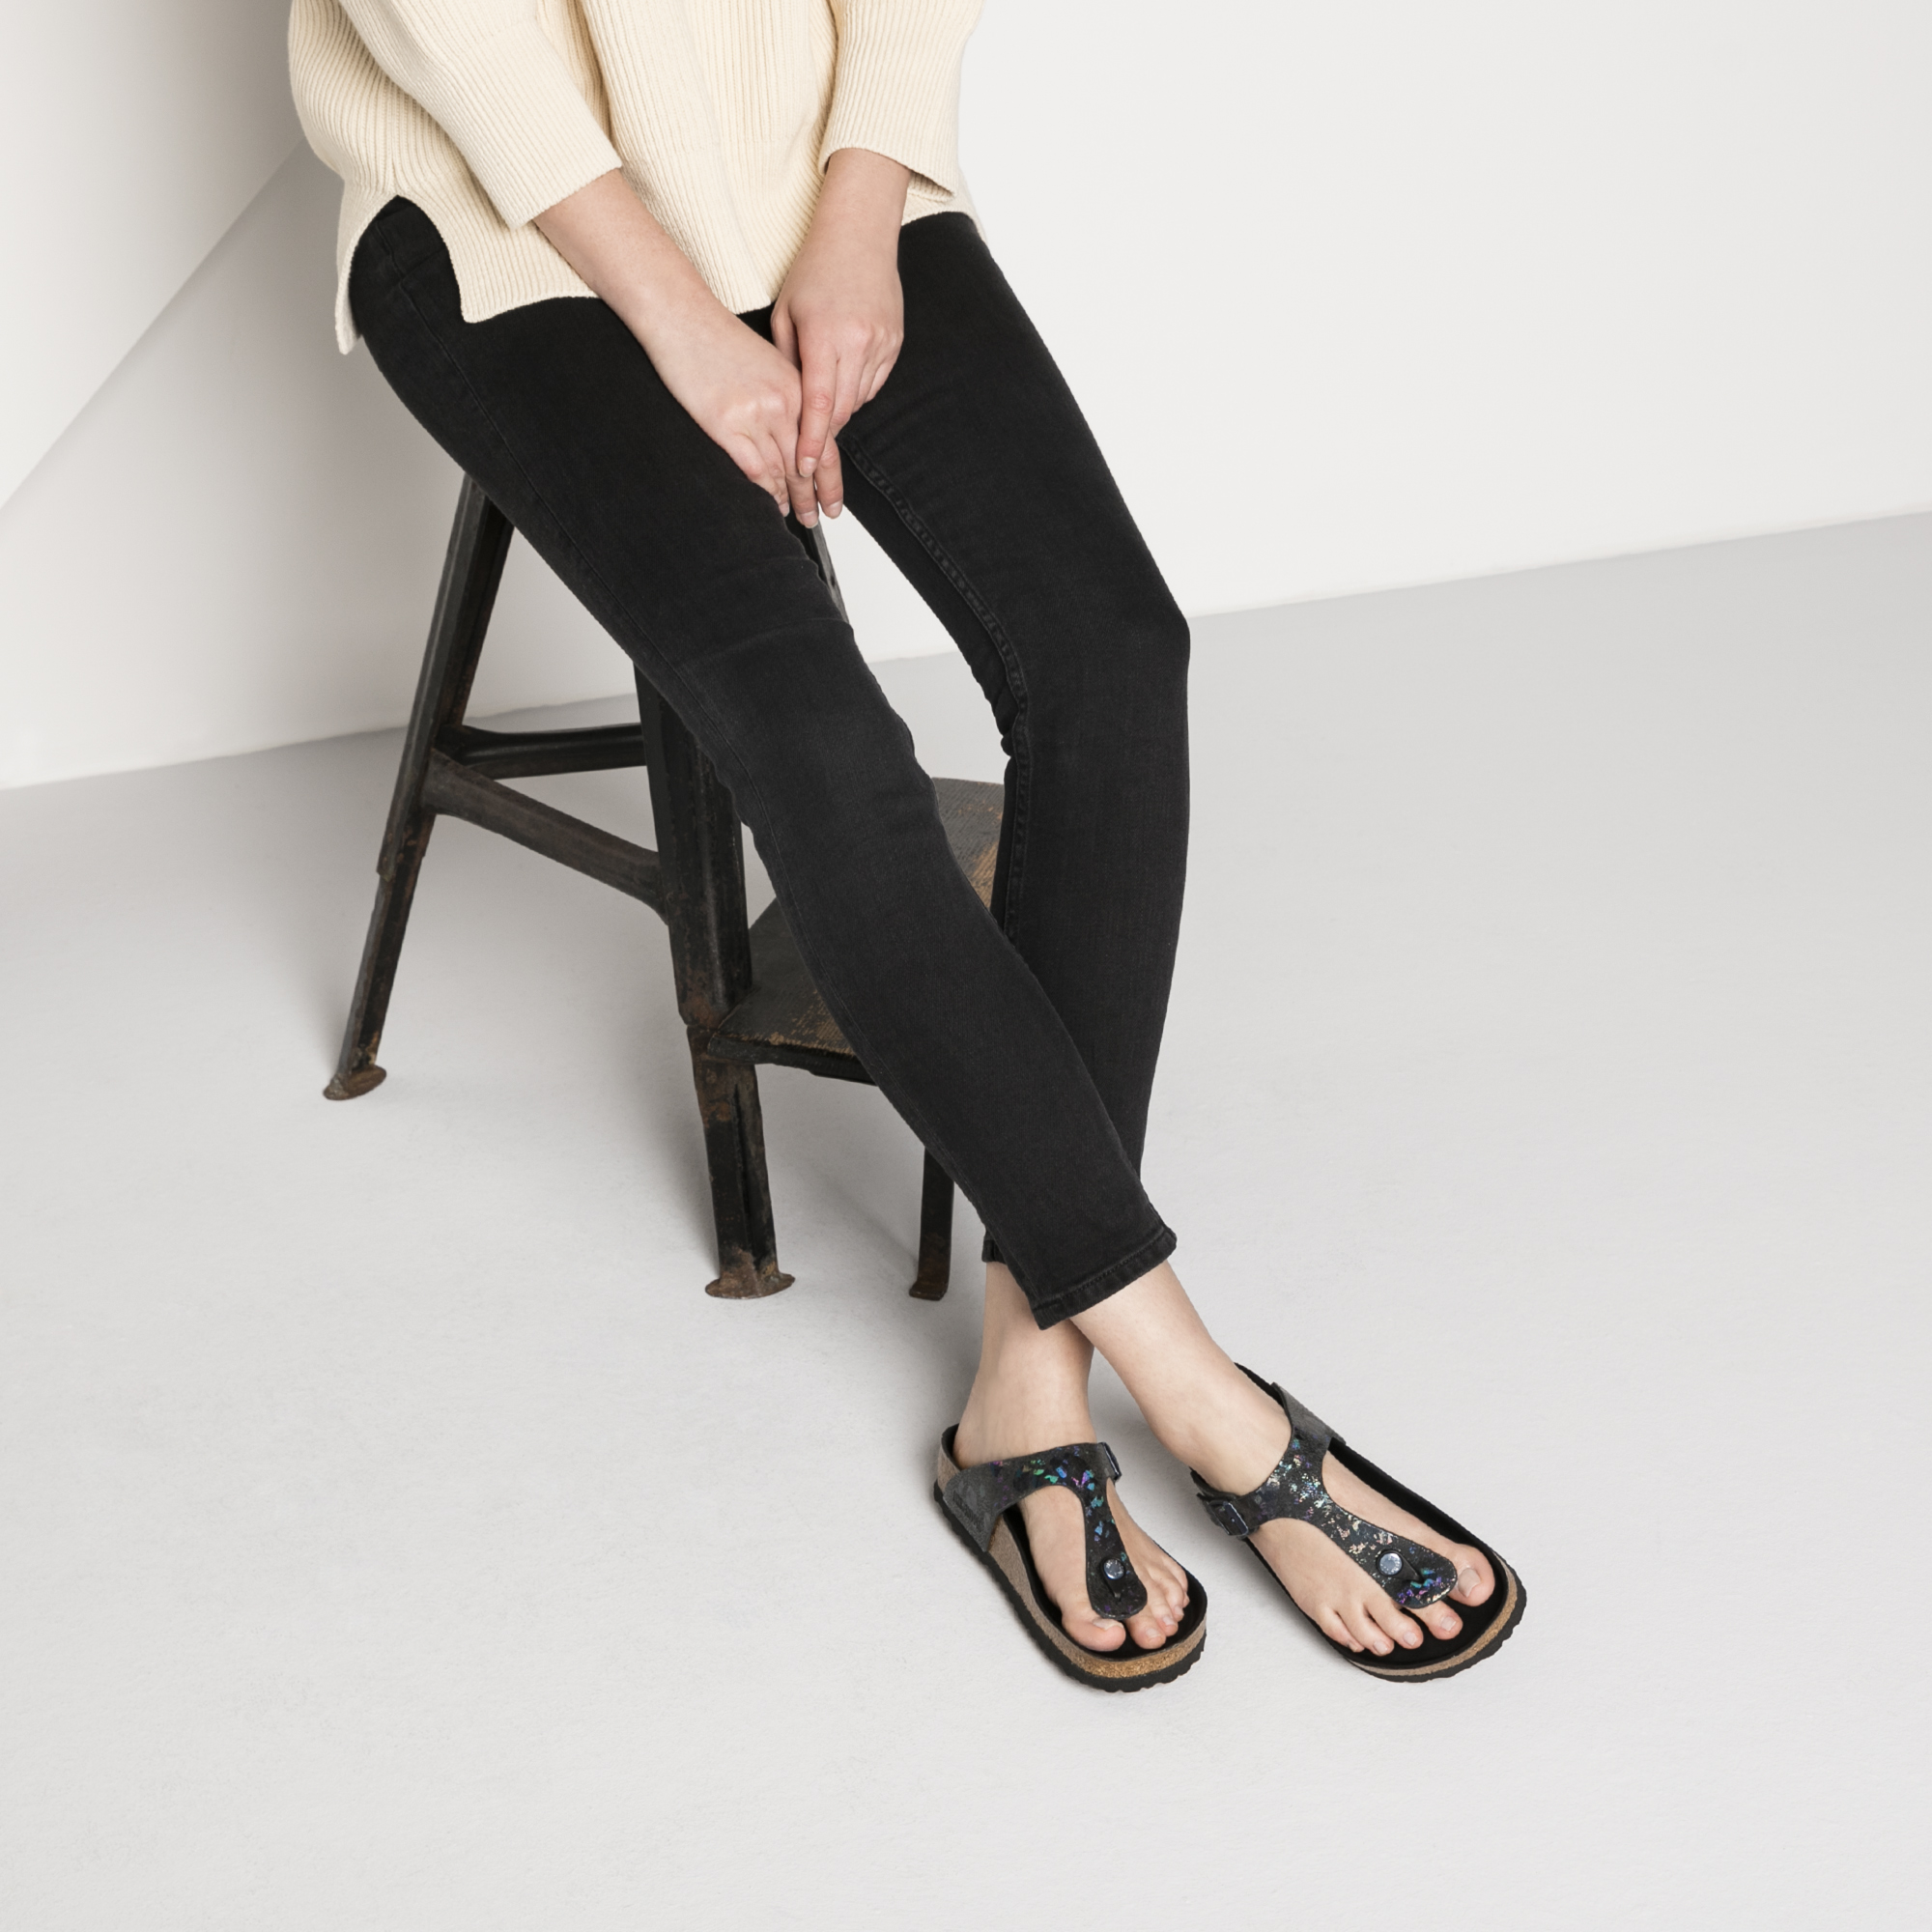 Gizeh Natural Leather Spotted Metallic Black